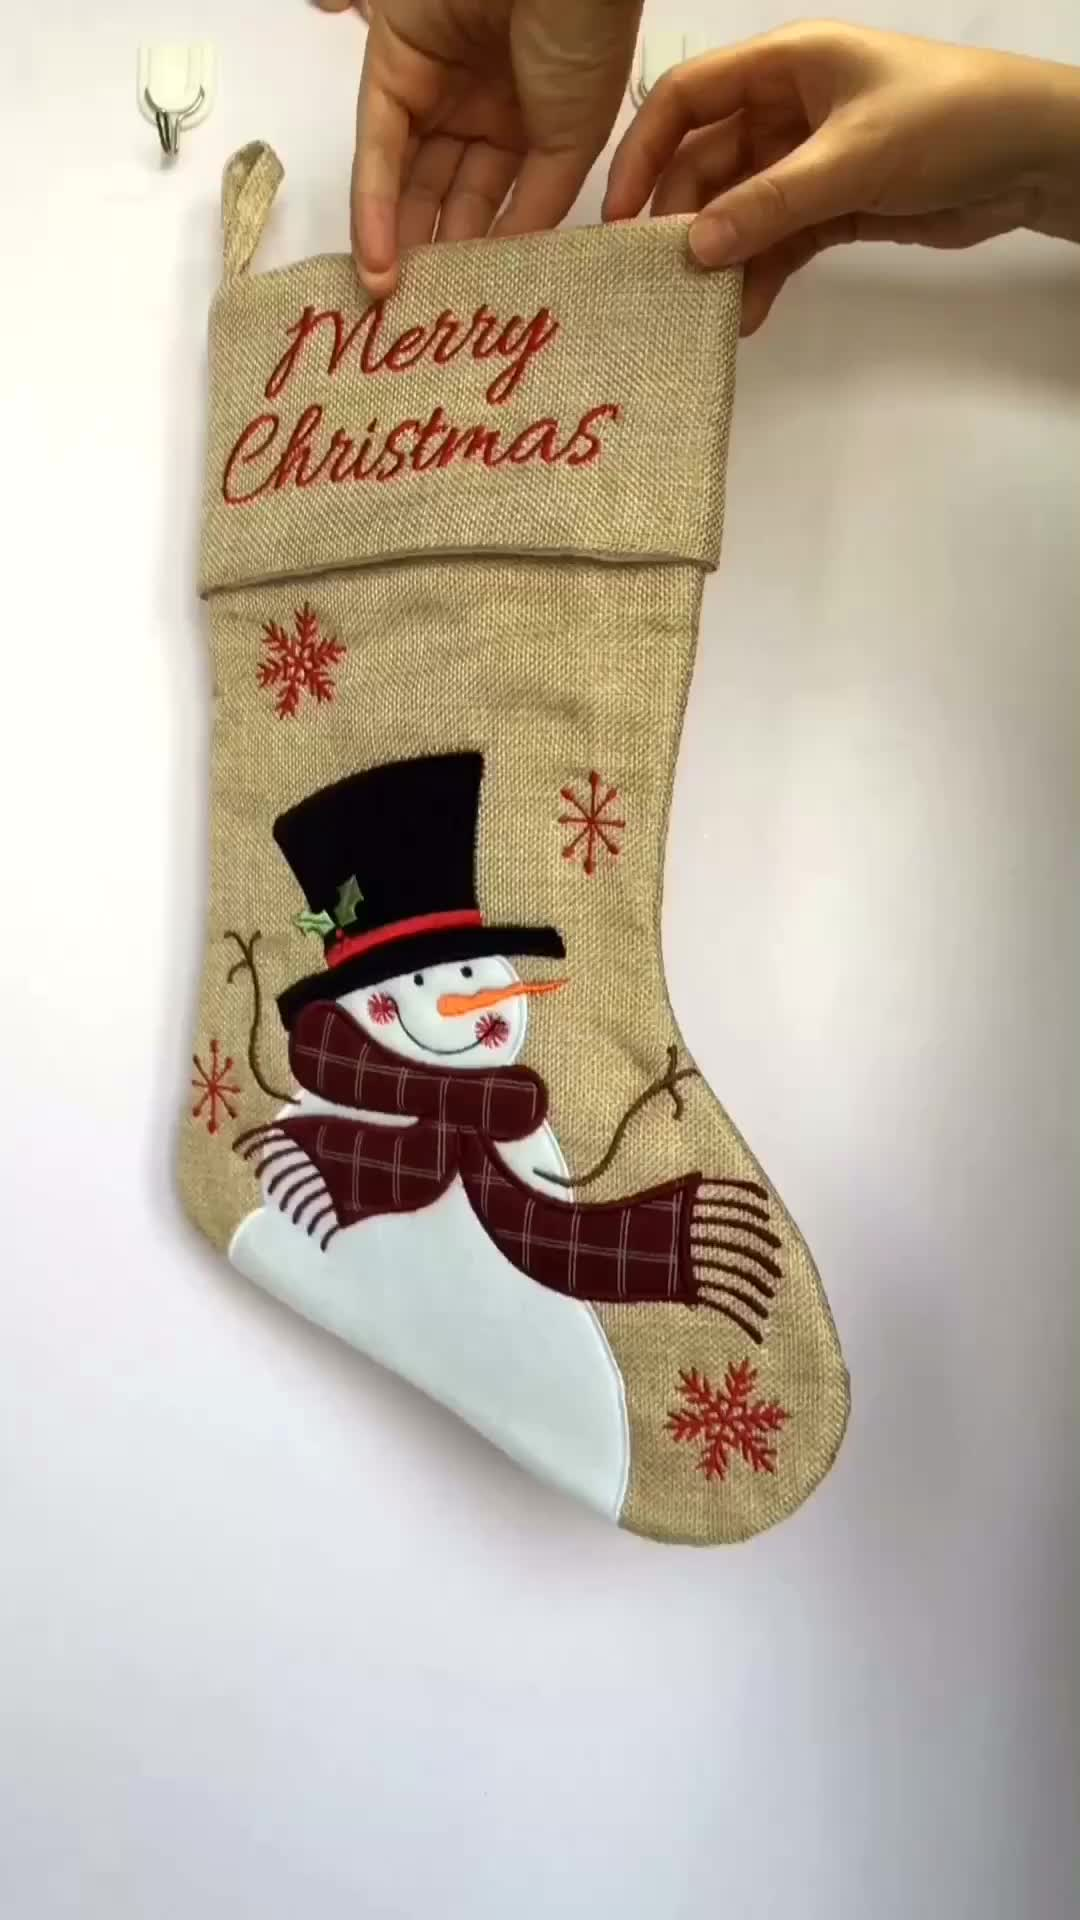 polyester country christmas stockings with santa snowman pattern - Country Christmas Stockings